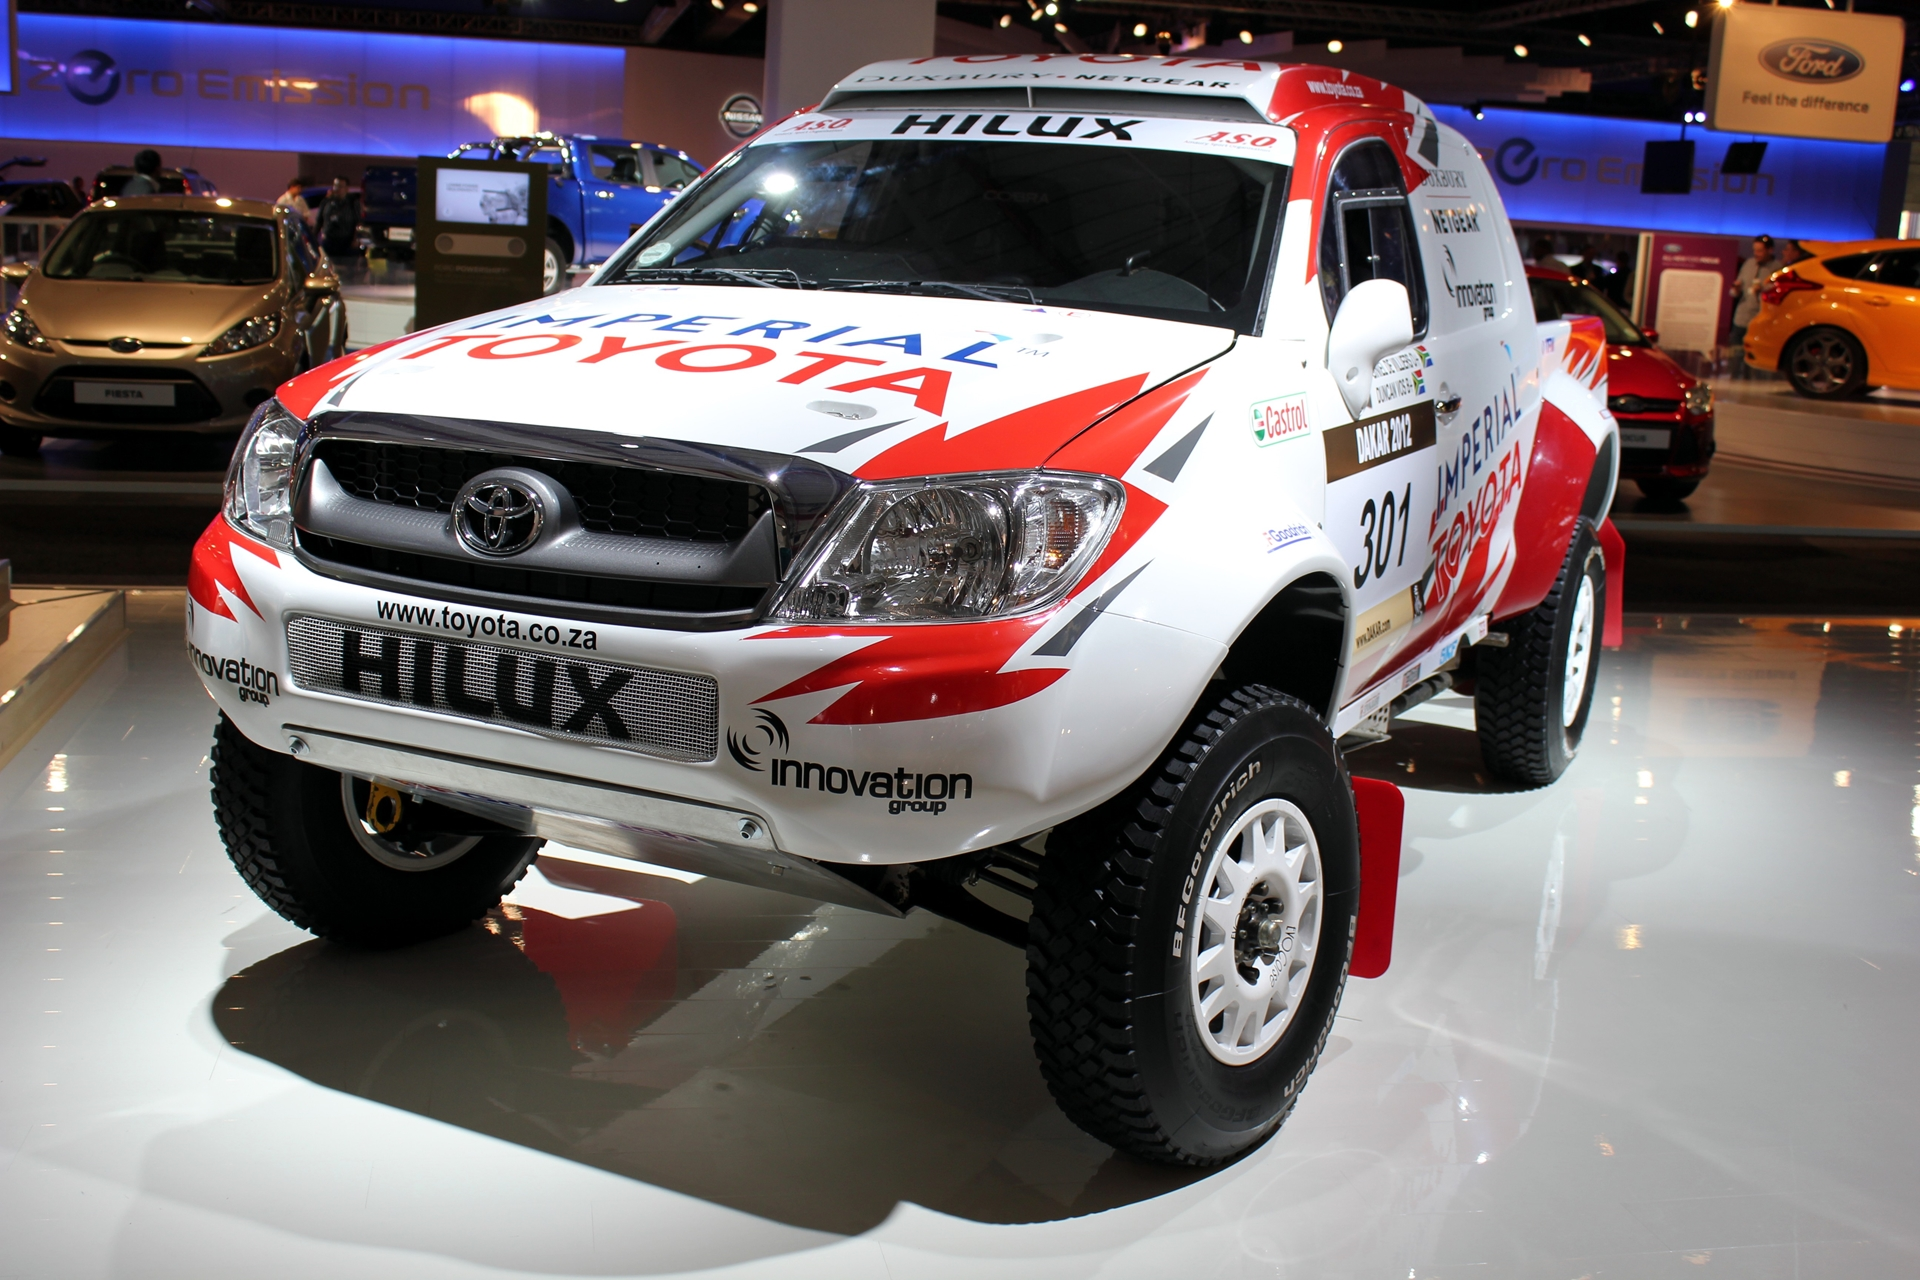 The Imperial Toyota South Africa Team to contest the 2012 Dakar Rally